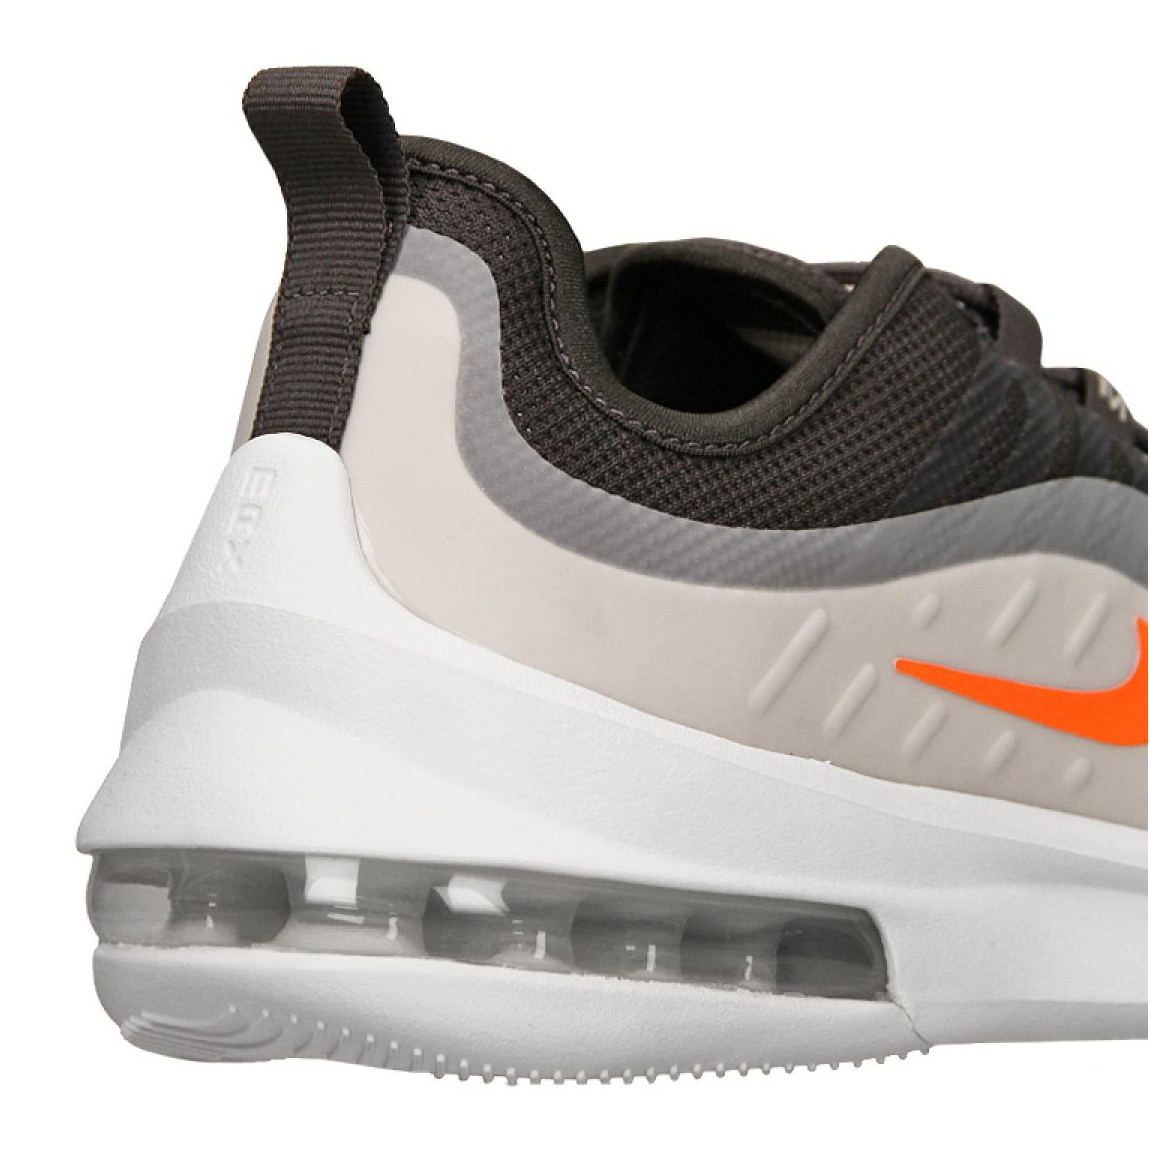 Details about Nike Air Max Axis M AA2146 013 shoes grey